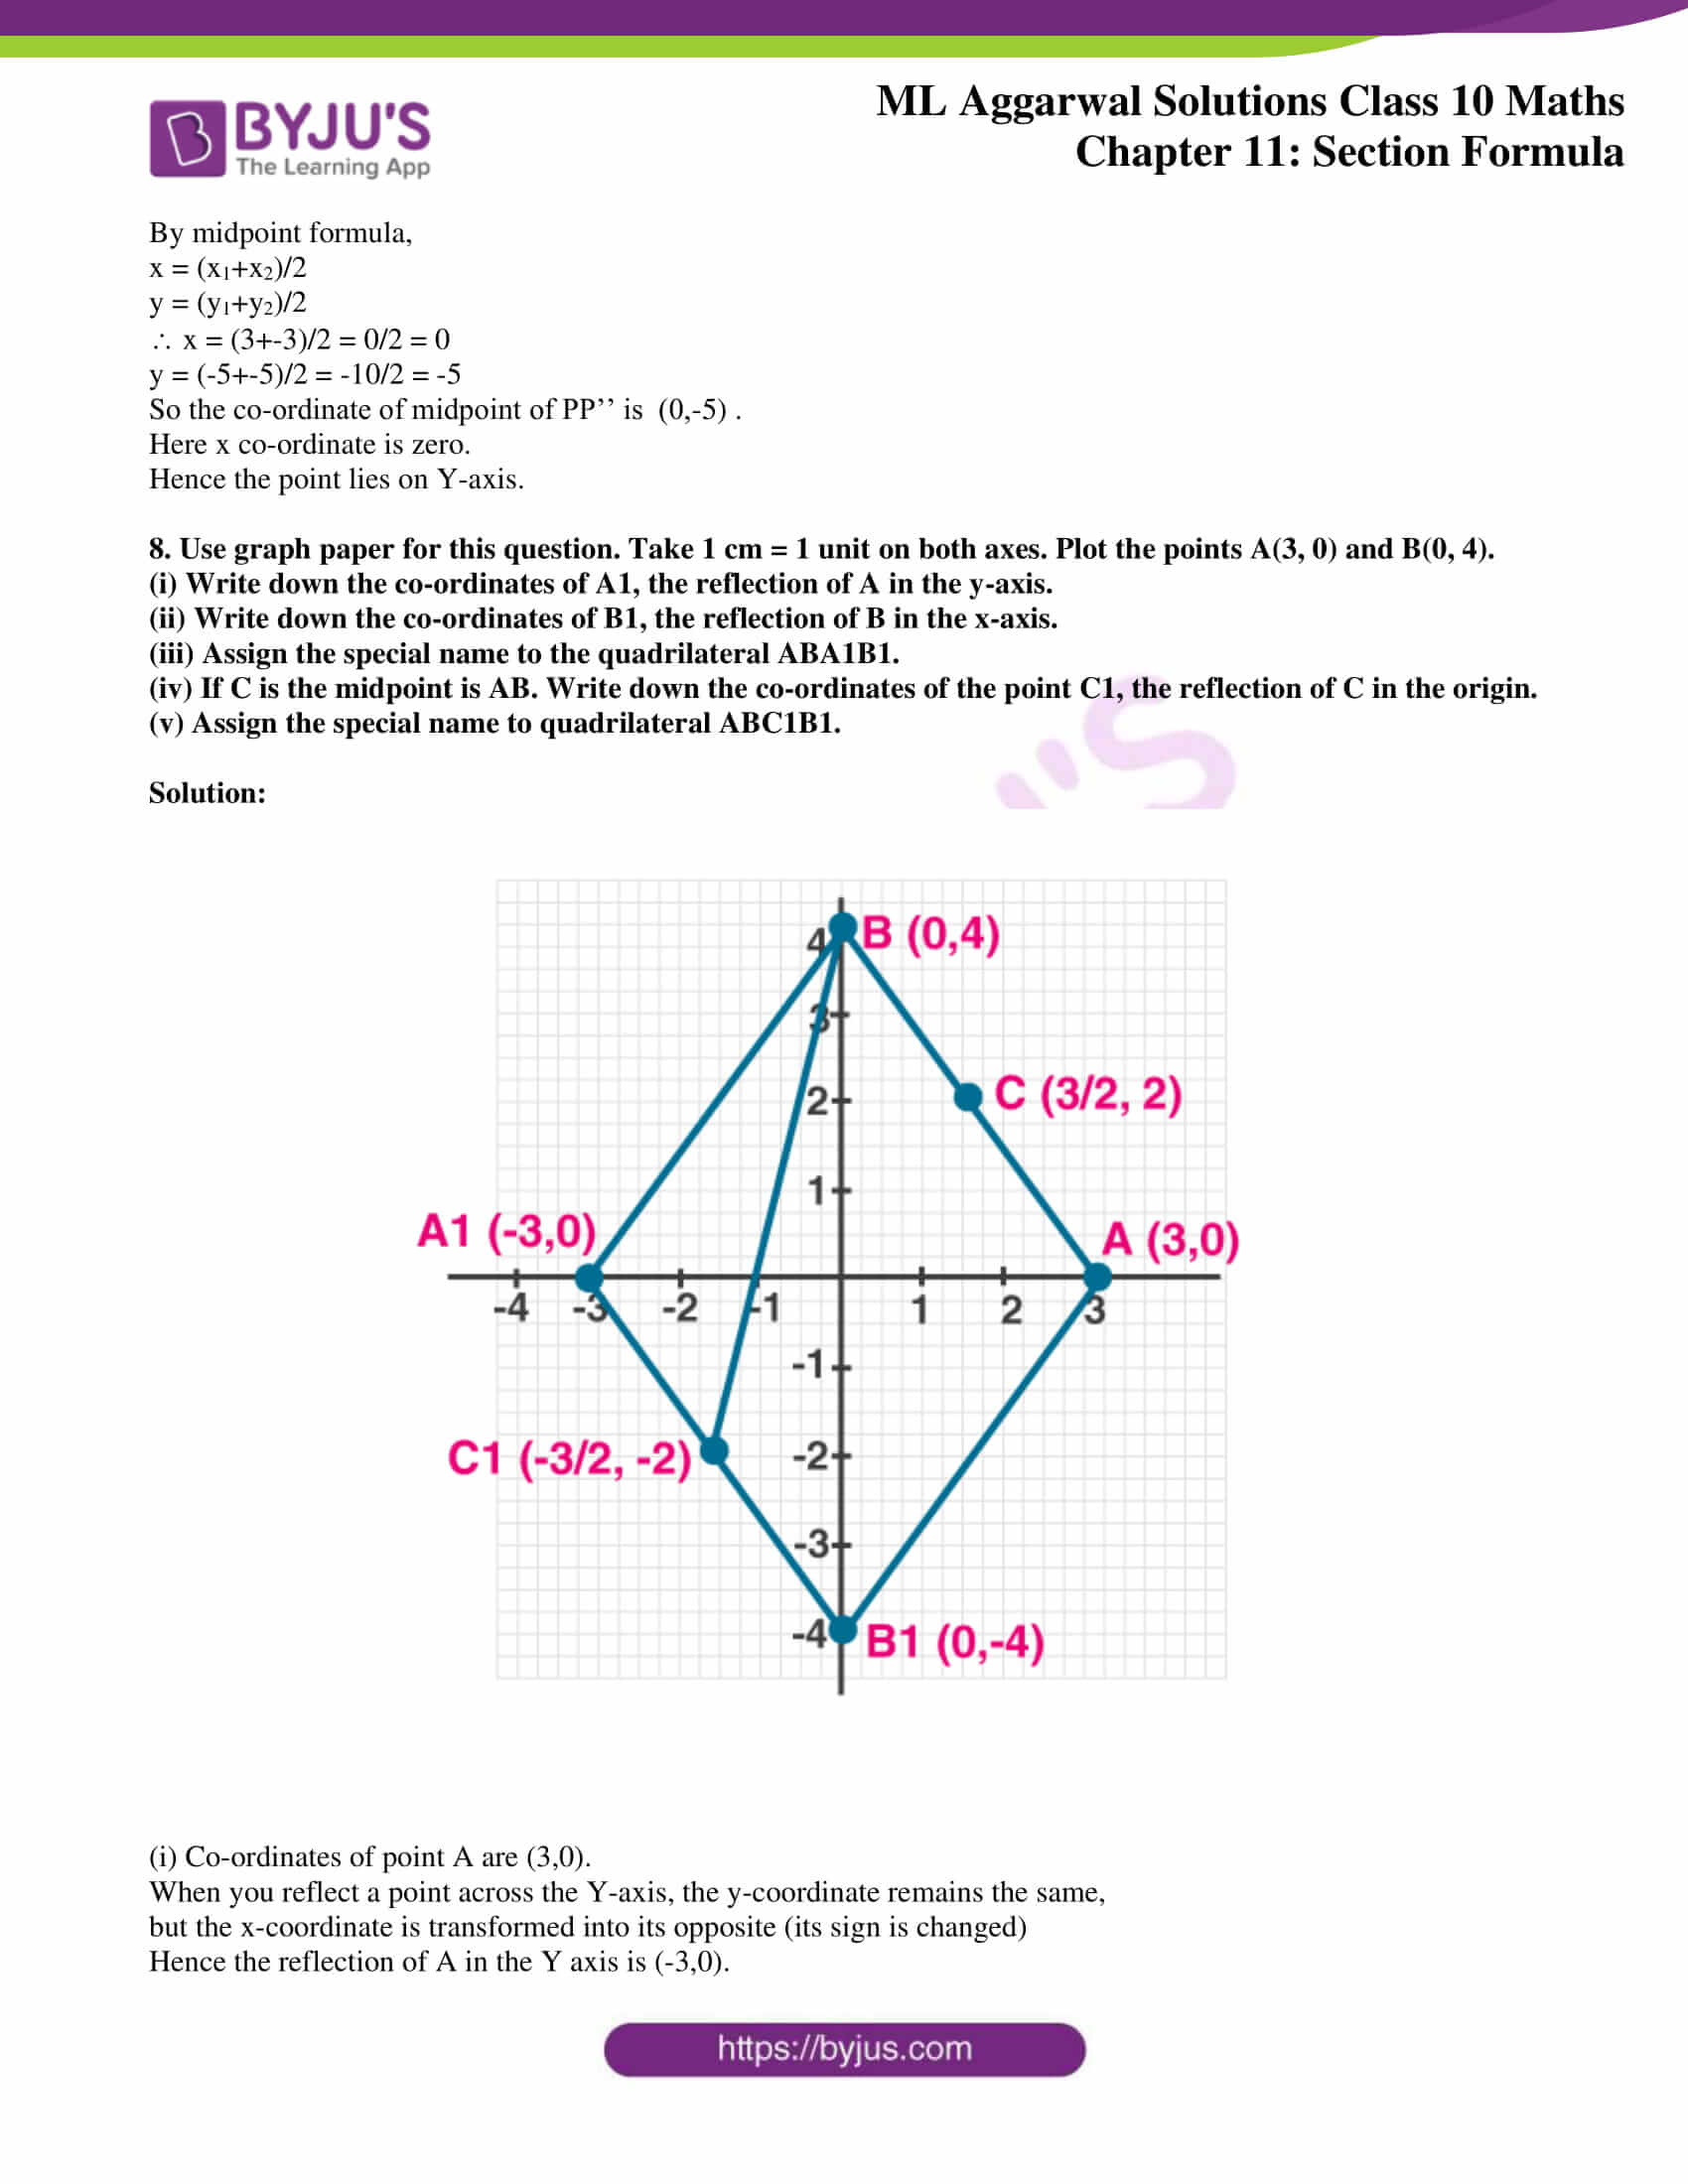 ml aggarwal solutions class 10 maths chapter 11 07